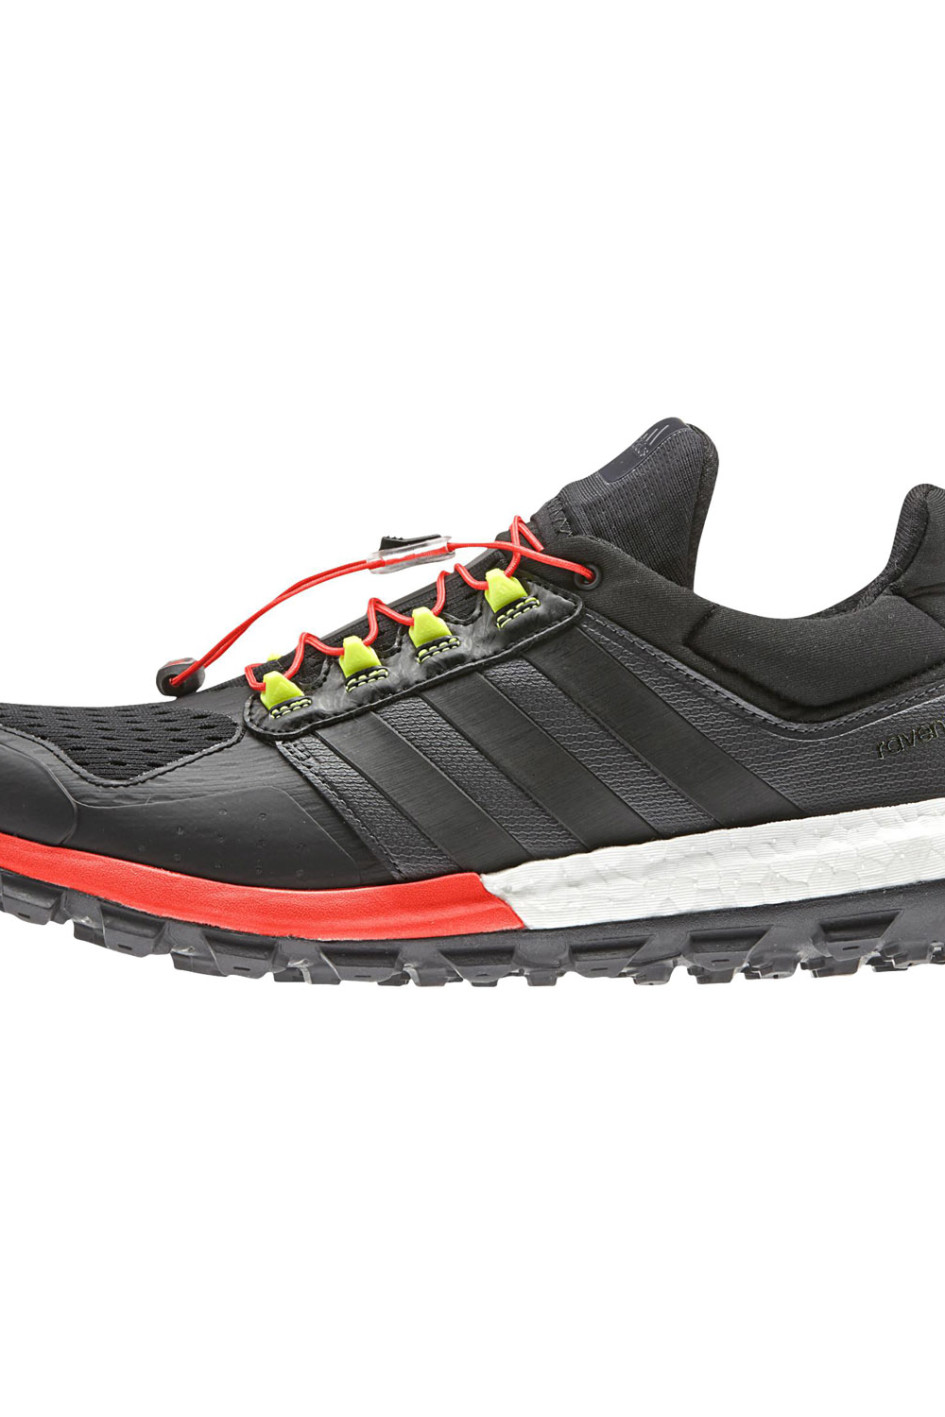 adidas raven boost mujer